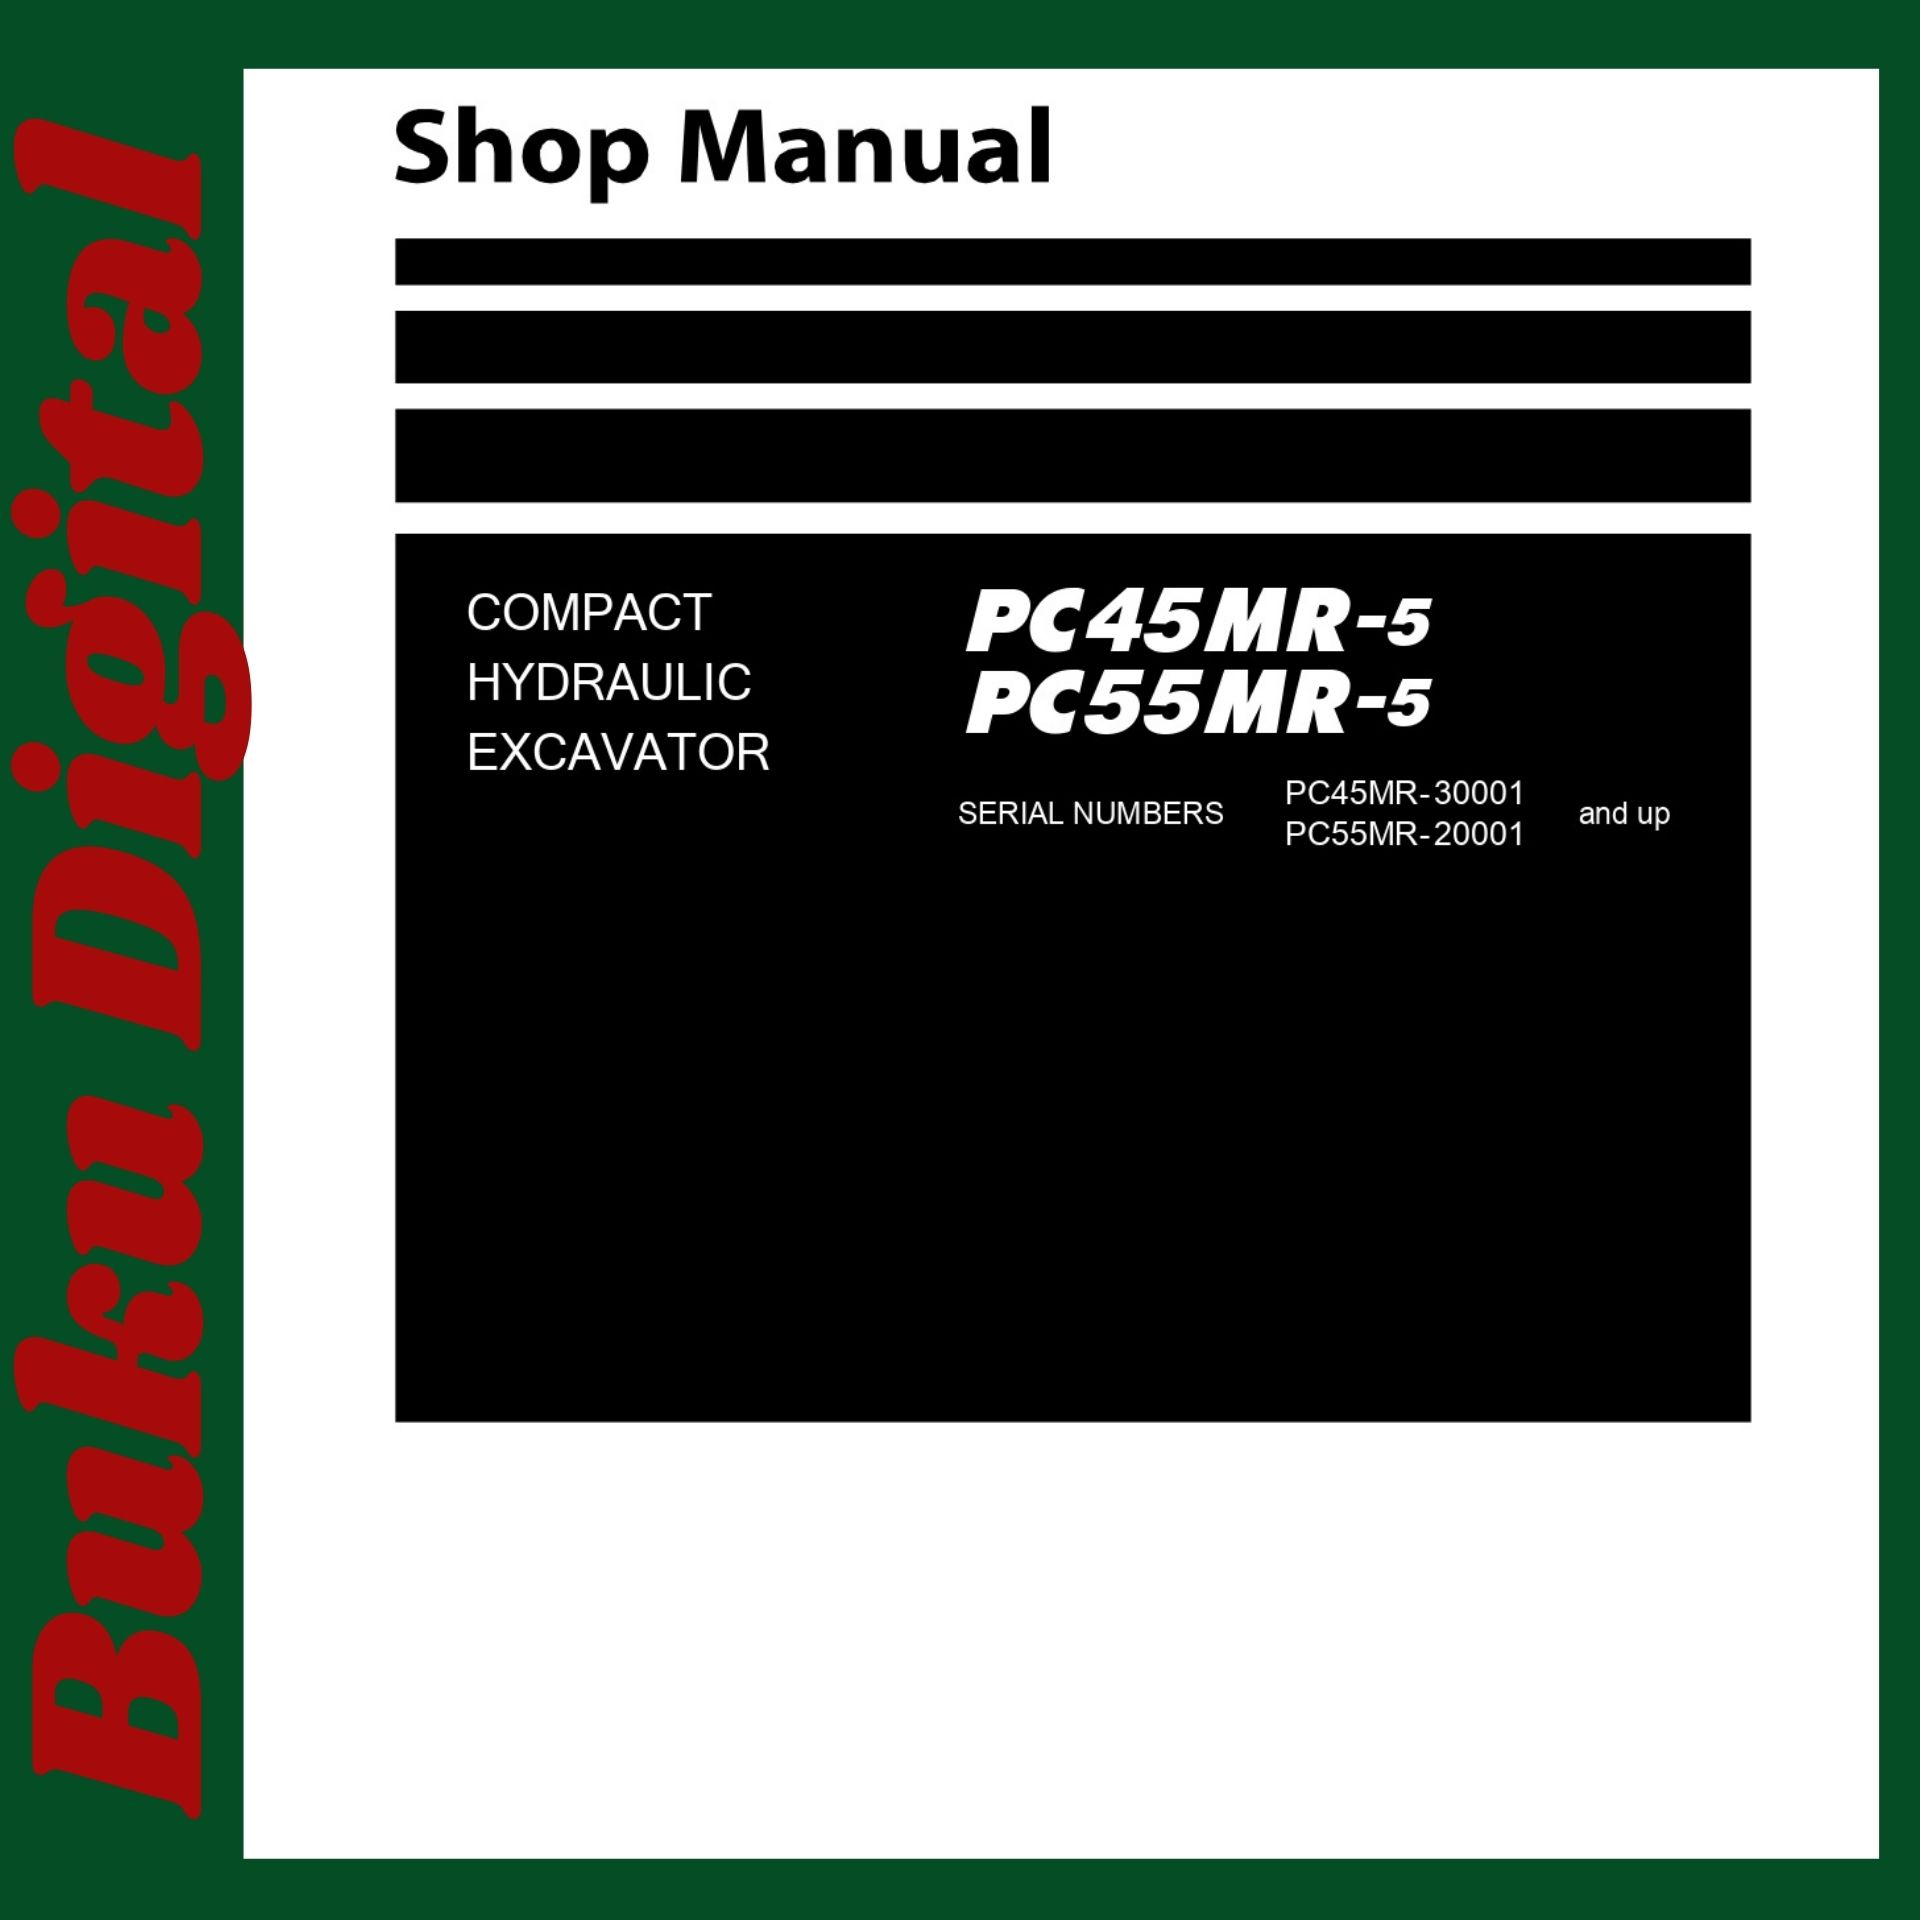 Komatsu shop manual pc45mr-5 pc55mr-6 excavator